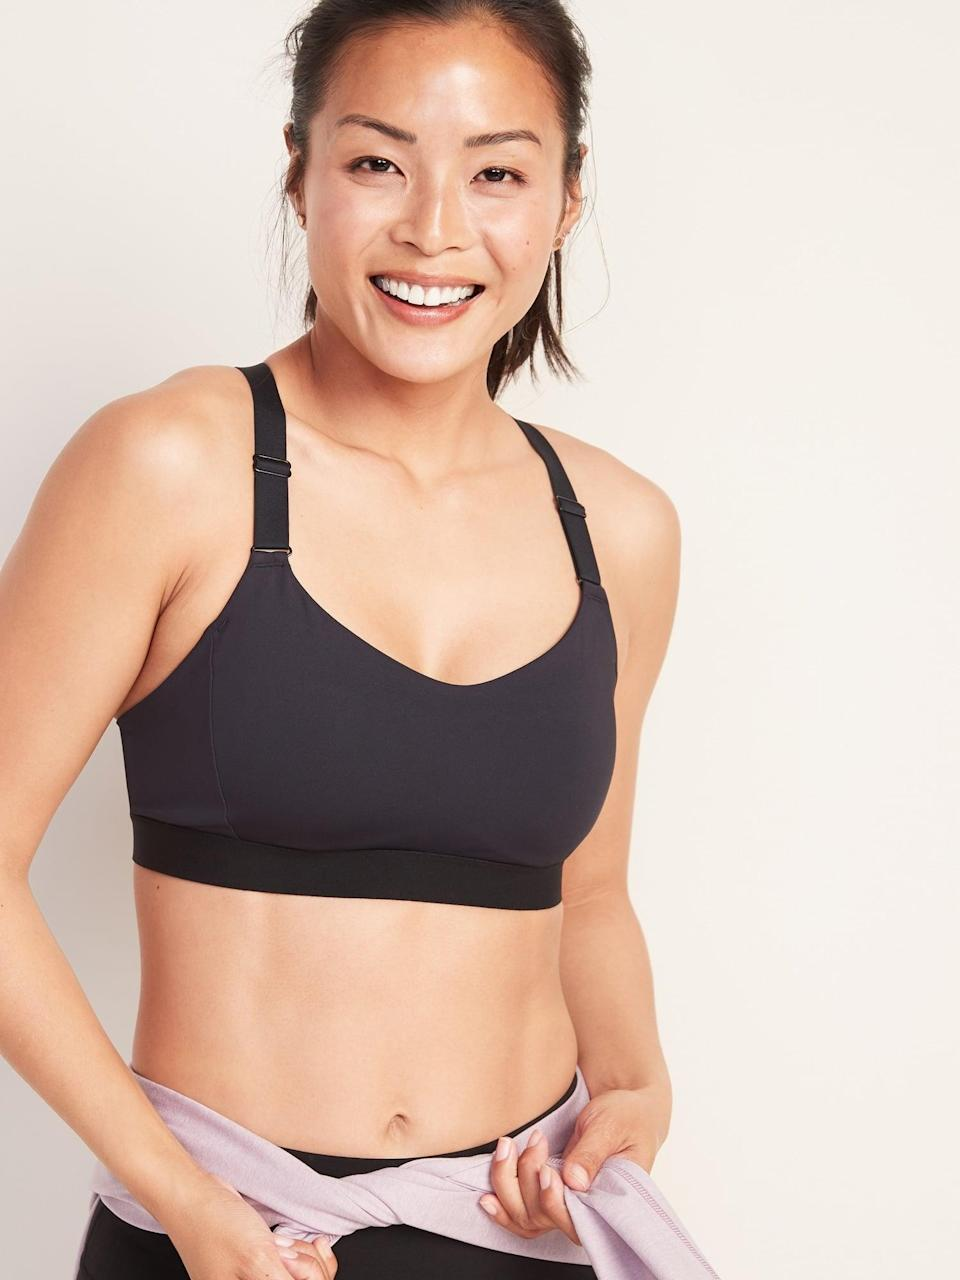 "<p>If you need more support, this <a href=""https://www.popsugar.com/buy/Old-Navy-Medium-Support-Powersoft-Adjustable-Strap-Sports-Bra-546334?p_name=Old%20Navy%20Medium%20Support%20Powersoft%20Adjustable-Strap%20Sports%20Bra&retailer=oldnavy.gap.com&pid=546334&price=25&evar1=fit%3Aus&evar9=47178917&evar98=https%3A%2F%2Fwww.popsugar.com%2Ffitness%2Fphoto-gallery%2F47178917%2Fimage%2F47179016%2FOld-Navy-Medium-Support-Powersoft-Adjustable-Strap-Sports-Bra&list1=shopping%2Cold%20navy%2Cworkout%20clothes&prop13=api&pdata=1"" class=""link rapid-noclick-resp"" rel=""nofollow noopener"" target=""_blank"" data-ylk=""slk:Old Navy Medium Support Powersoft Adjustable-Strap Sports Bra"">Old Navy Medium Support Powersoft Adjustable-Strap Sports Bra</a> ($25, originally $30) is for you.</p>"